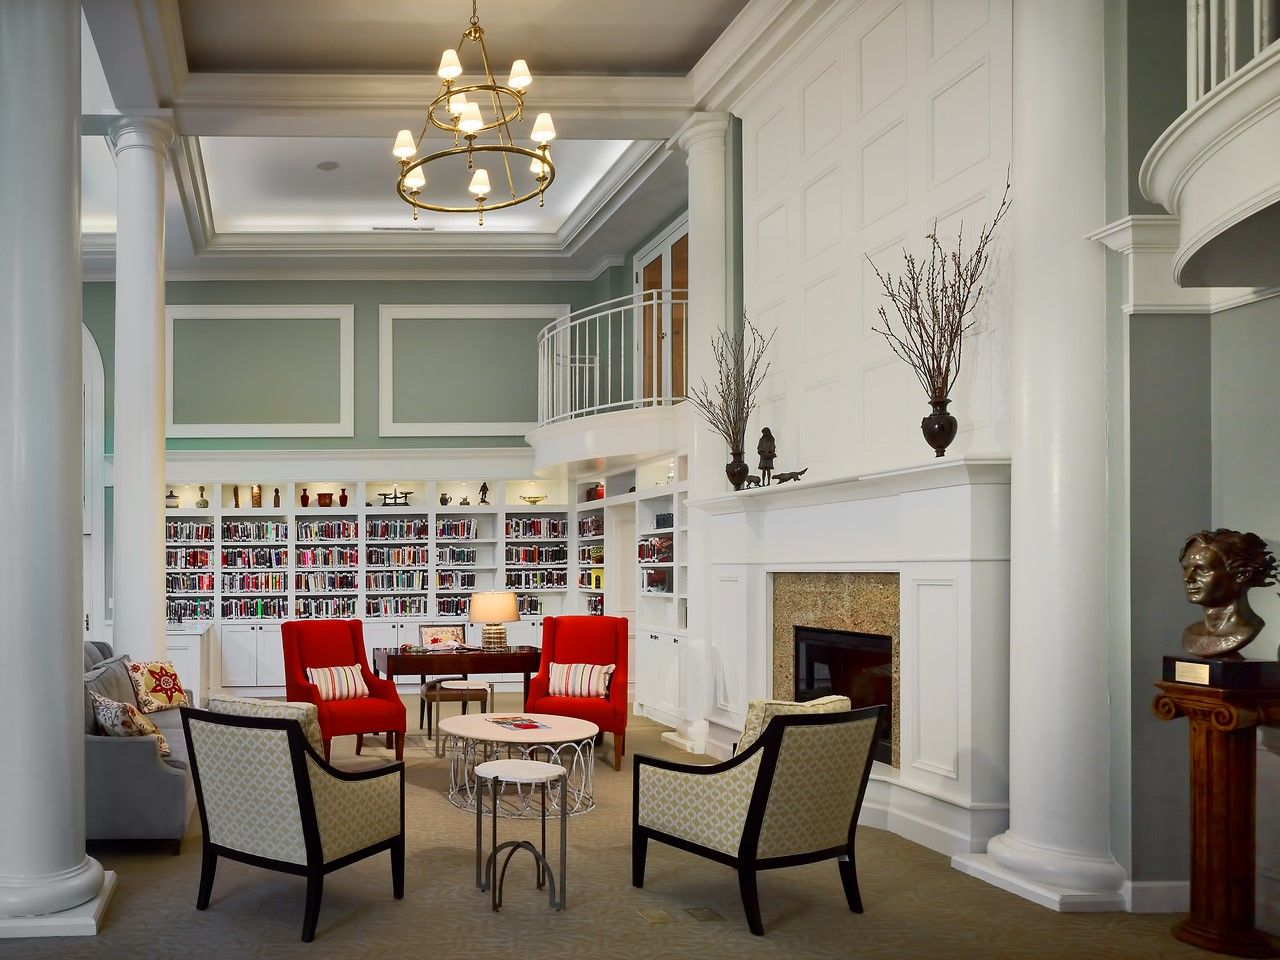 Still Hopes Episcopal Retirement Community | Renovation and Expansion Library THW